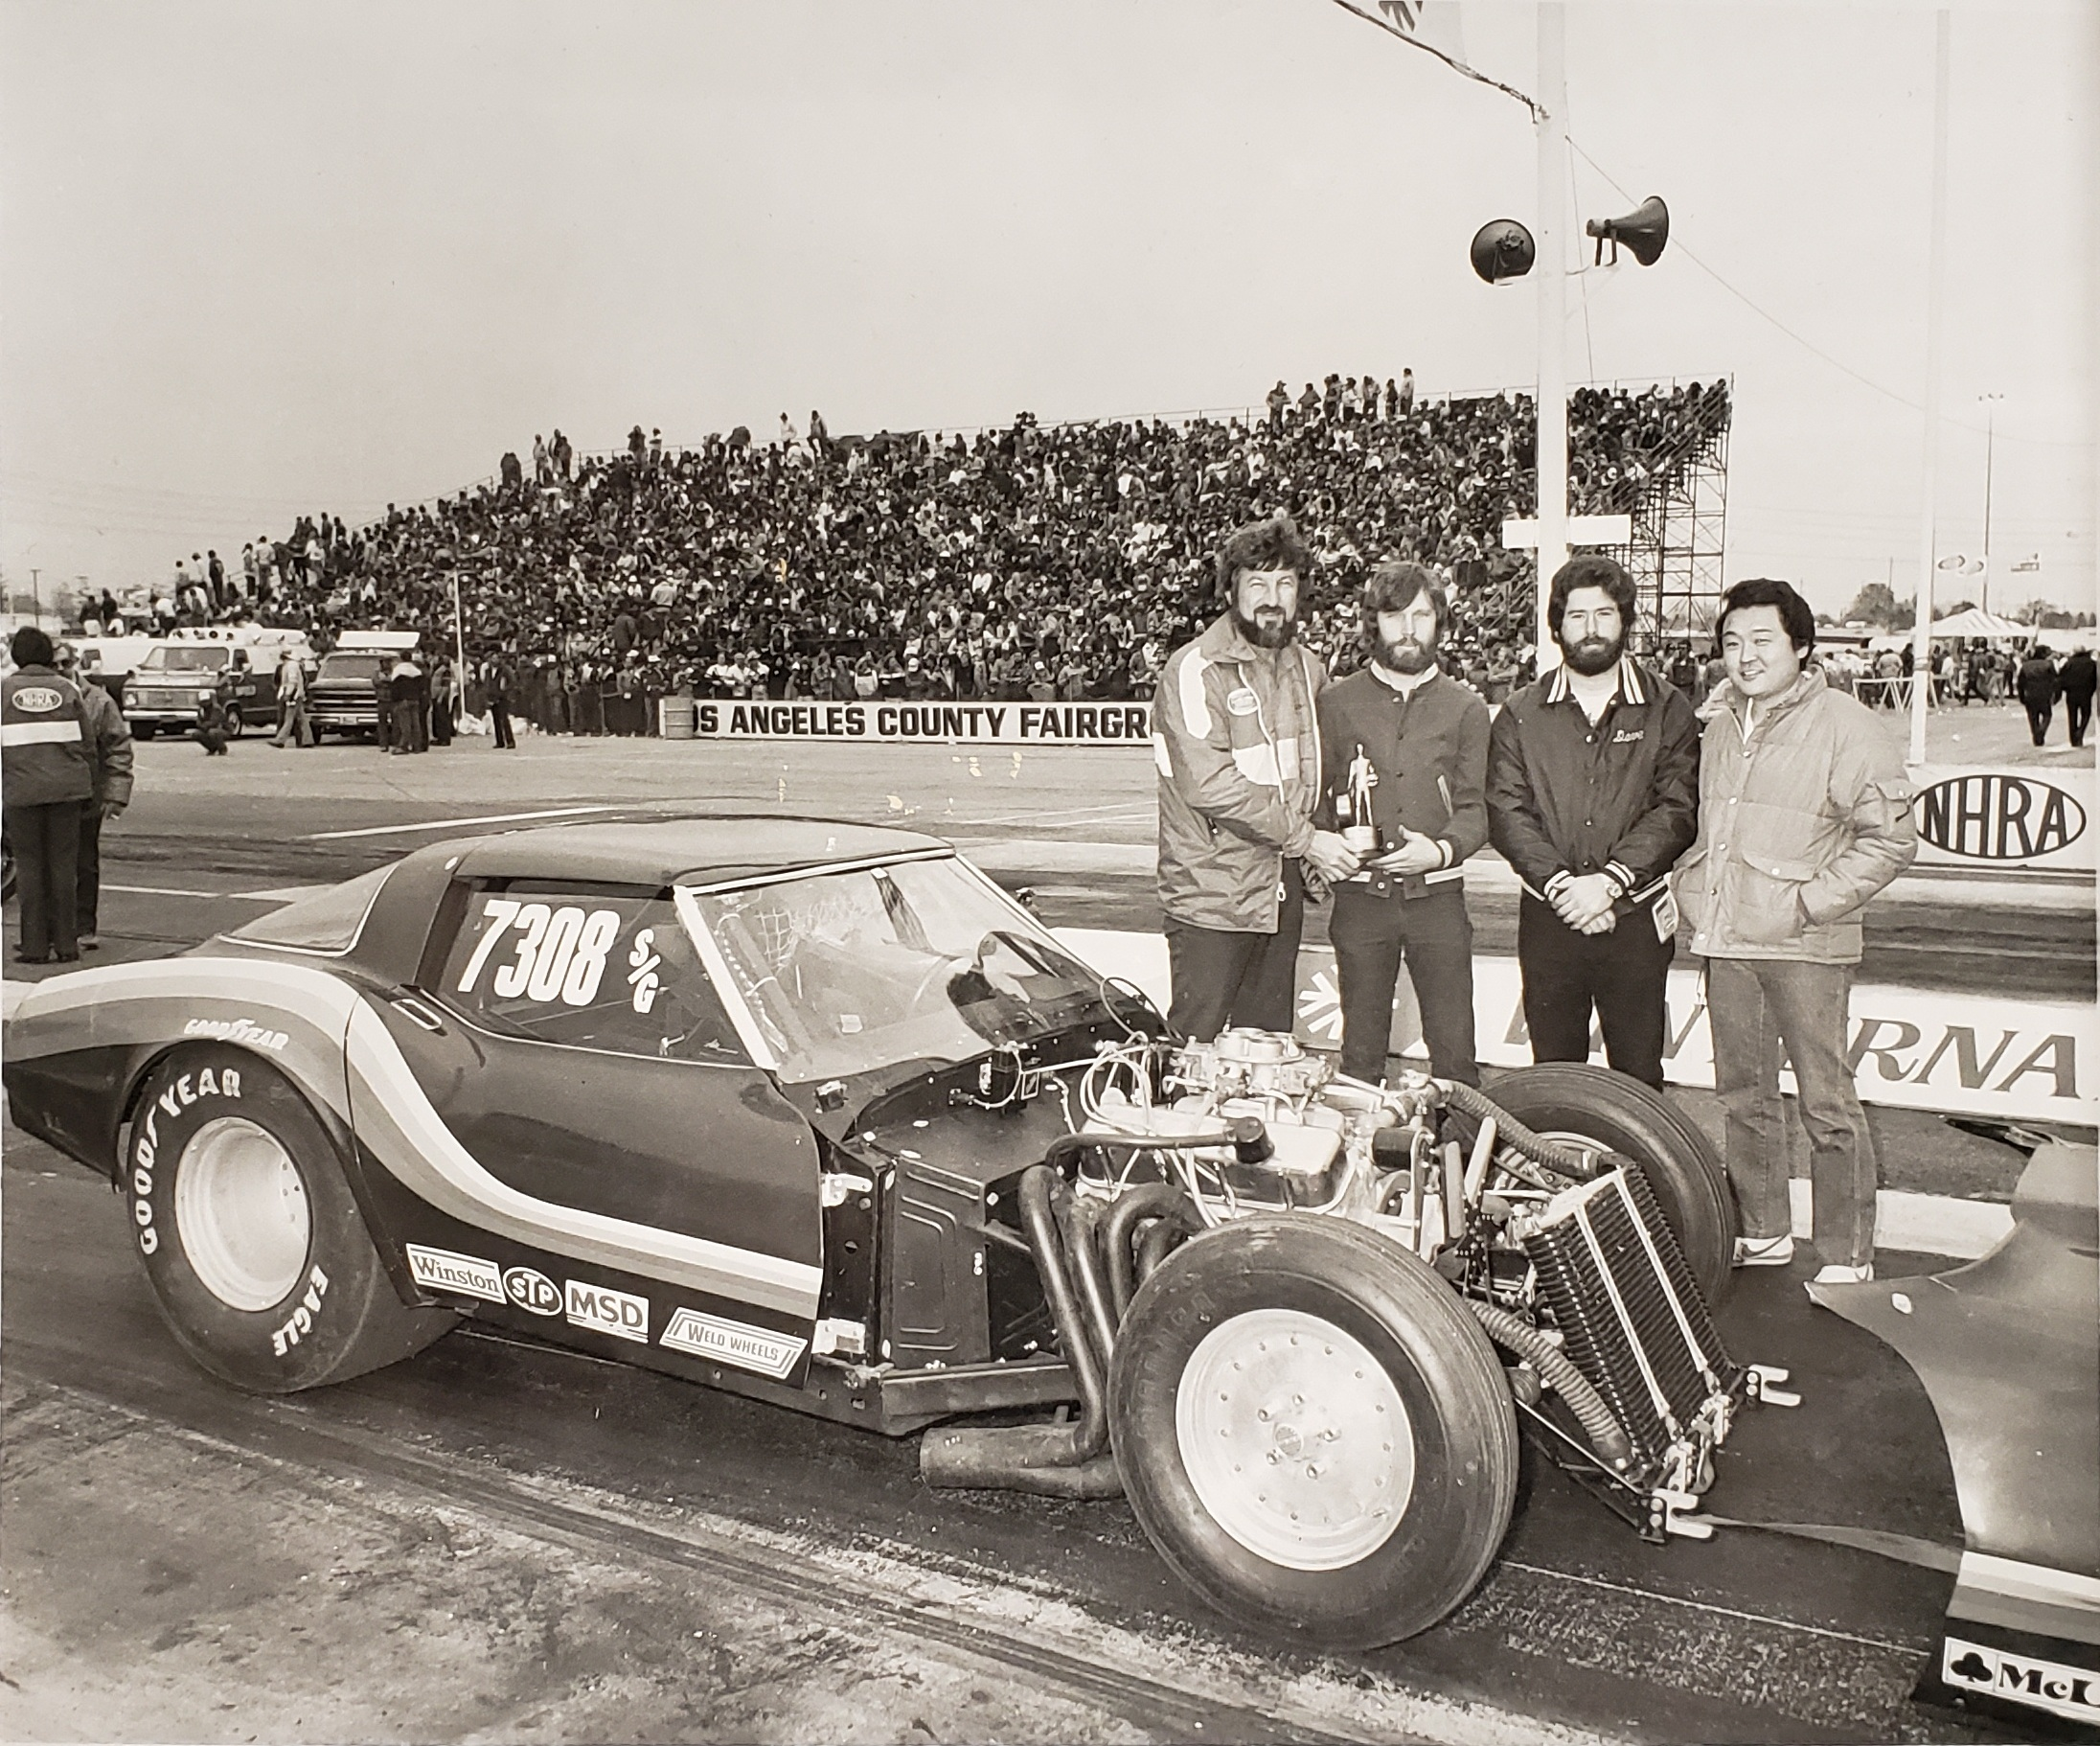 - James won a Duffy for National Hot Rod Association's (NHRA) Best Engineered Car at the Pomona Winter Nationals in 1982